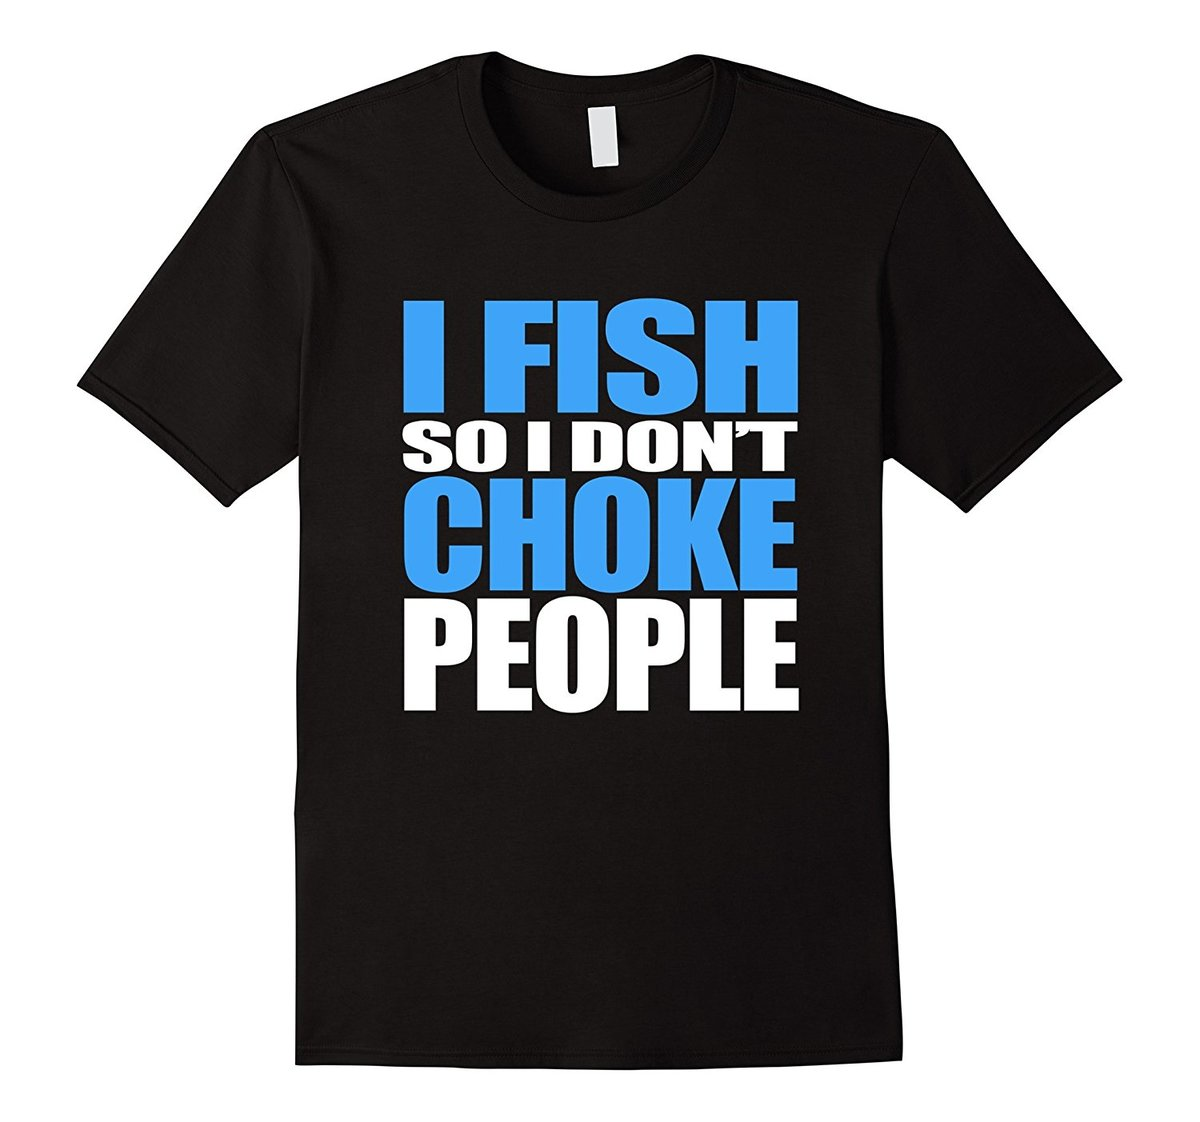 I Fish So I Don't Choke People Funny Fishes T-Shirt Brand Style Short Sleeve Cheap Sale 100 % Cotton Top Tee Fashion Style